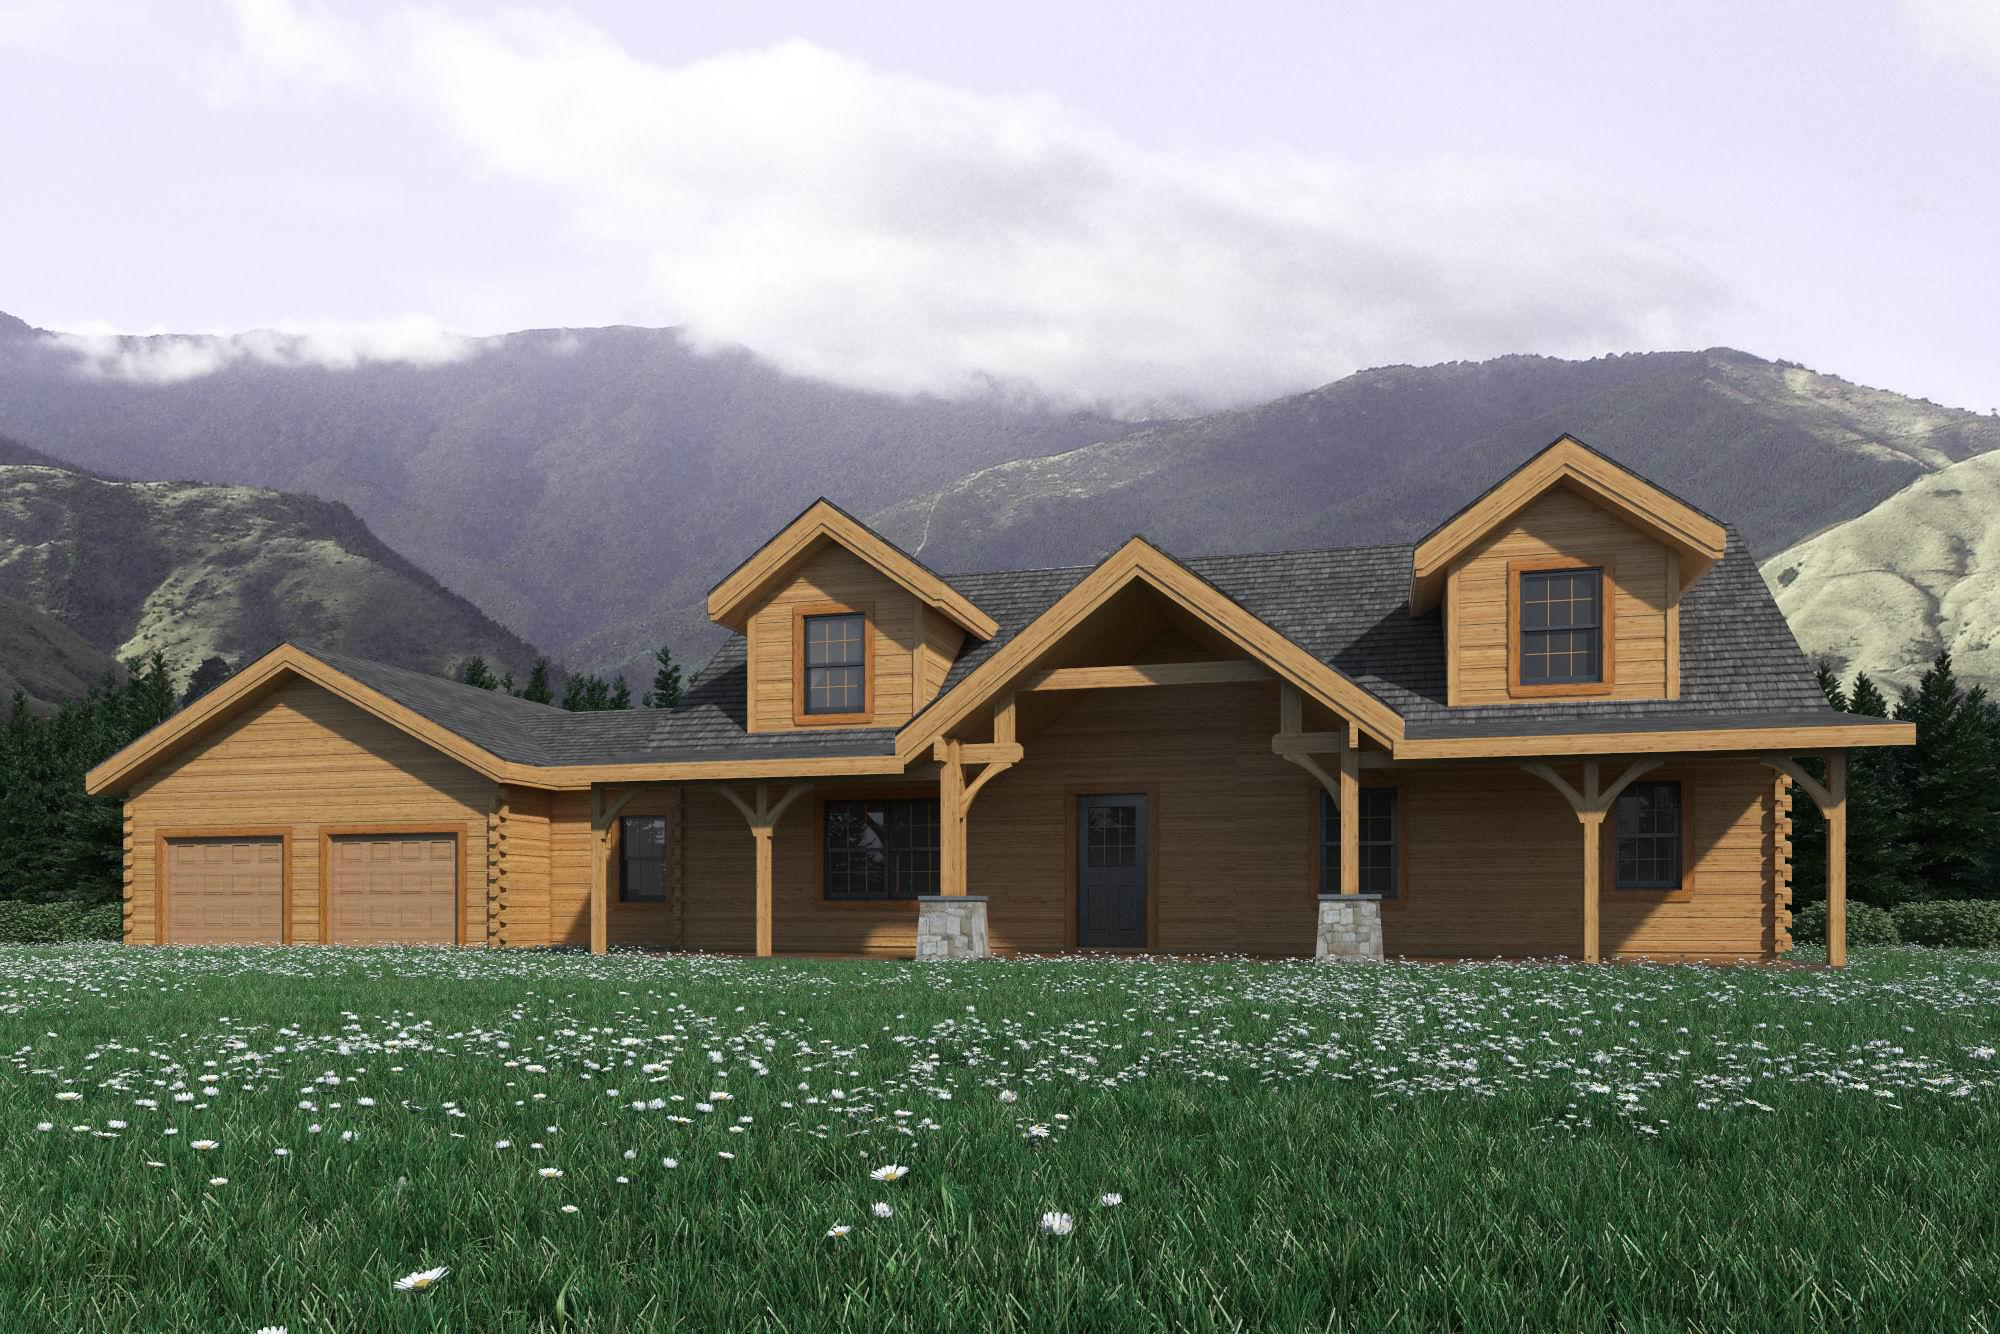 Mountain view home plan by countrymark log homes for Mountain view home plans